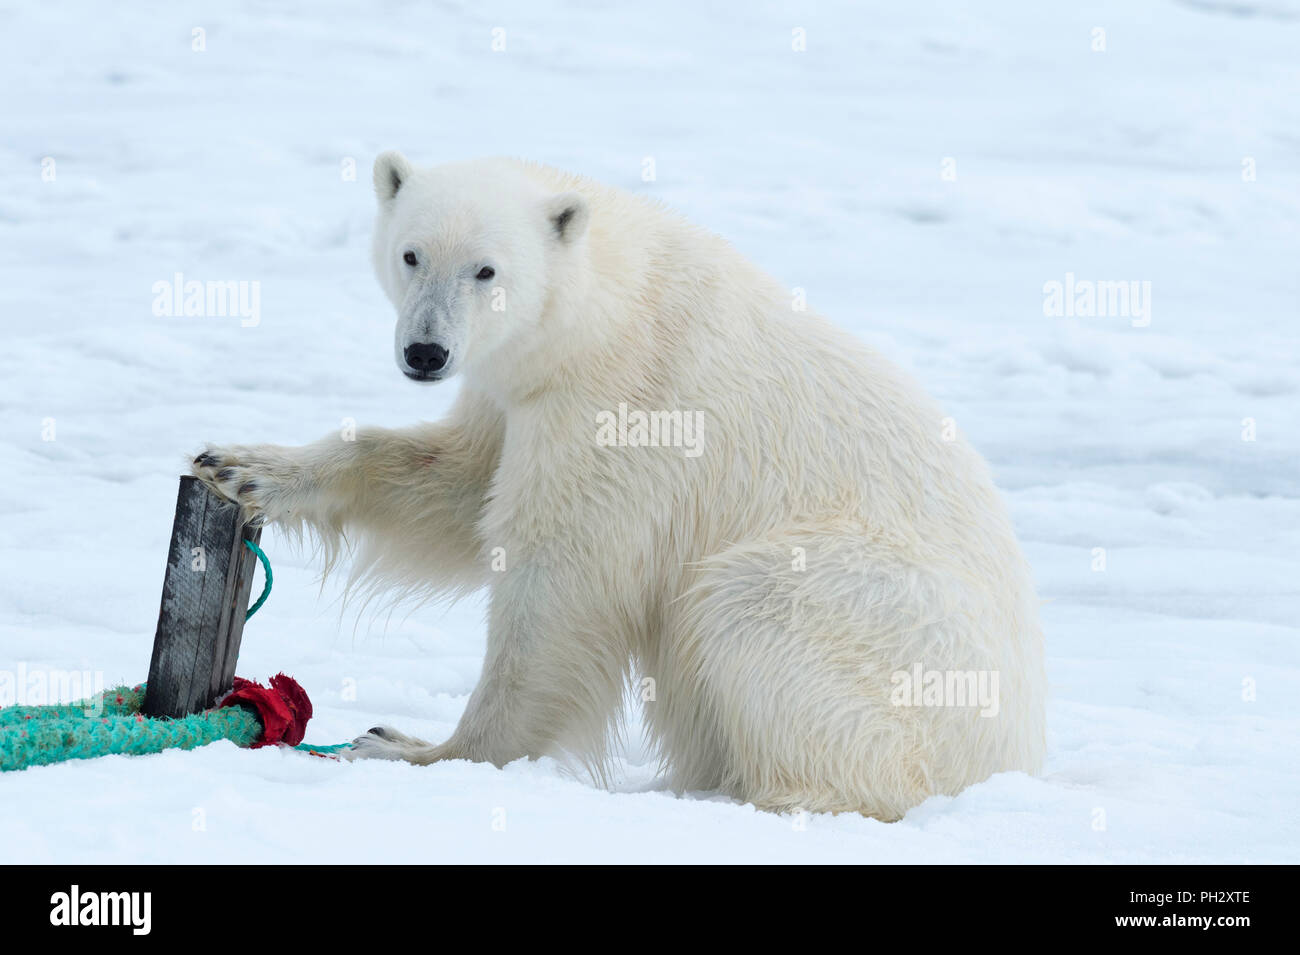 Polar Bear (Ursus maritimus) inspecting the rope and the pole that holds an expedition ship, Svalbard Archipelago, Norway - Stock Image